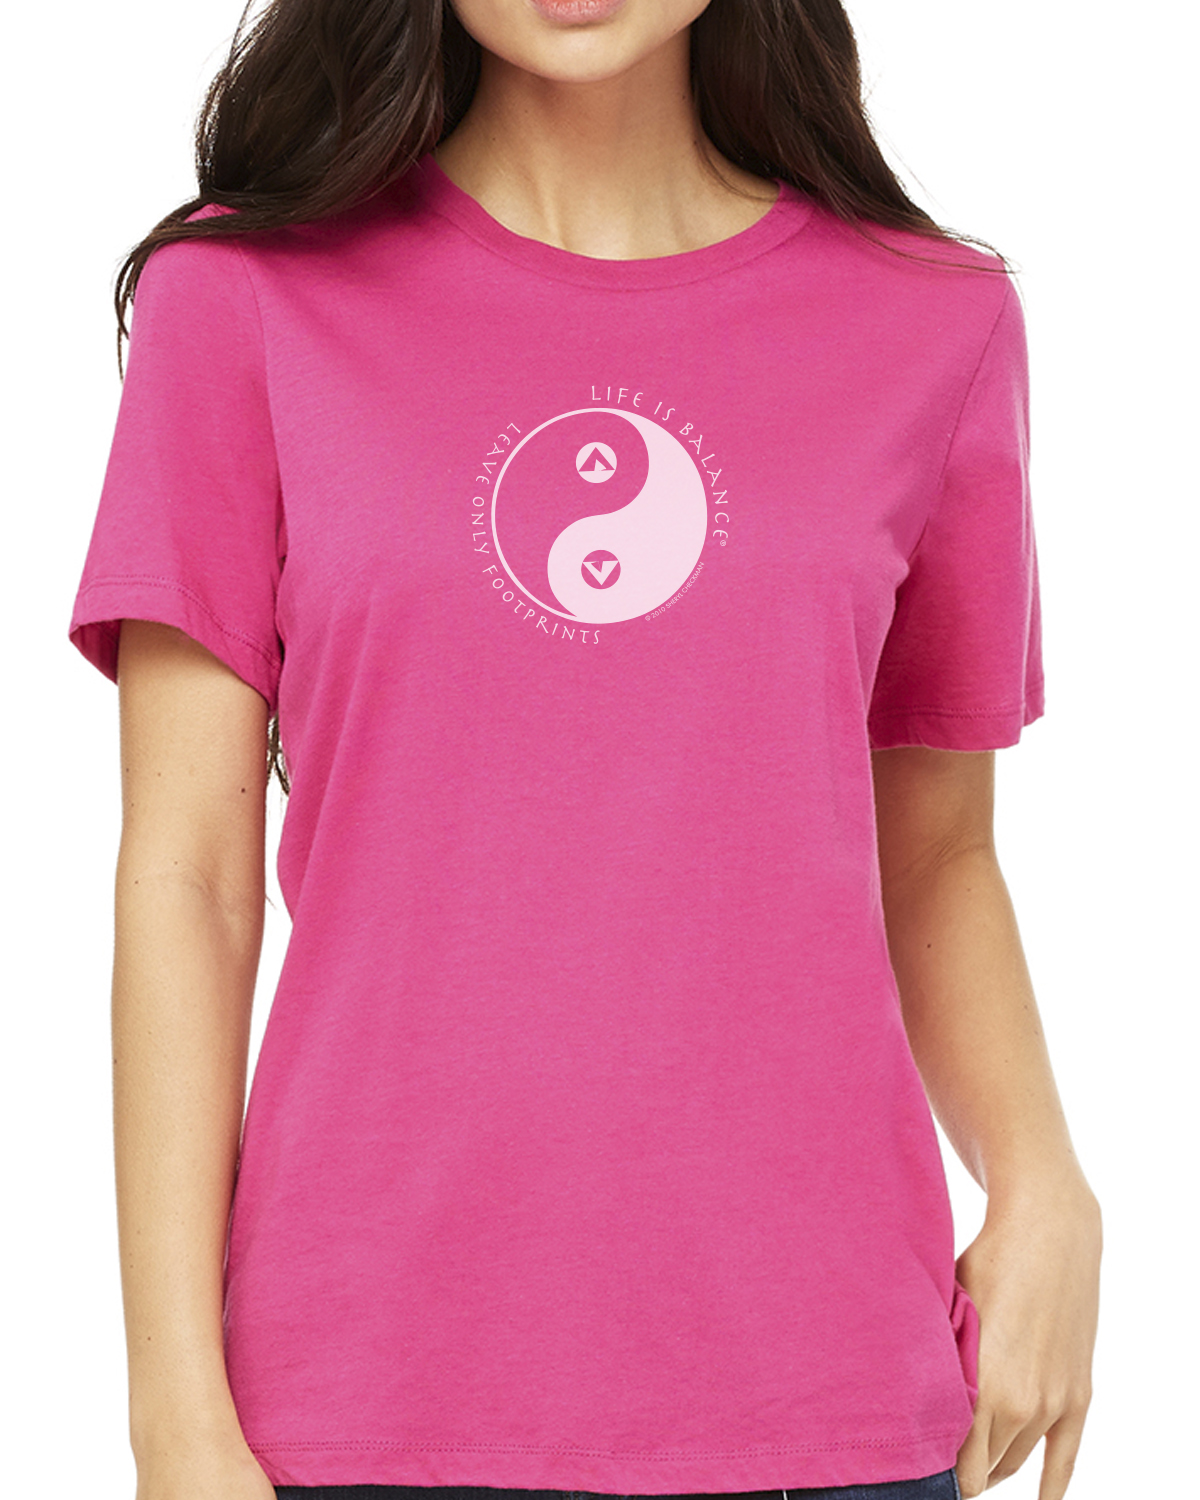 Women's short-sleeve camping t-shirt (Berry)